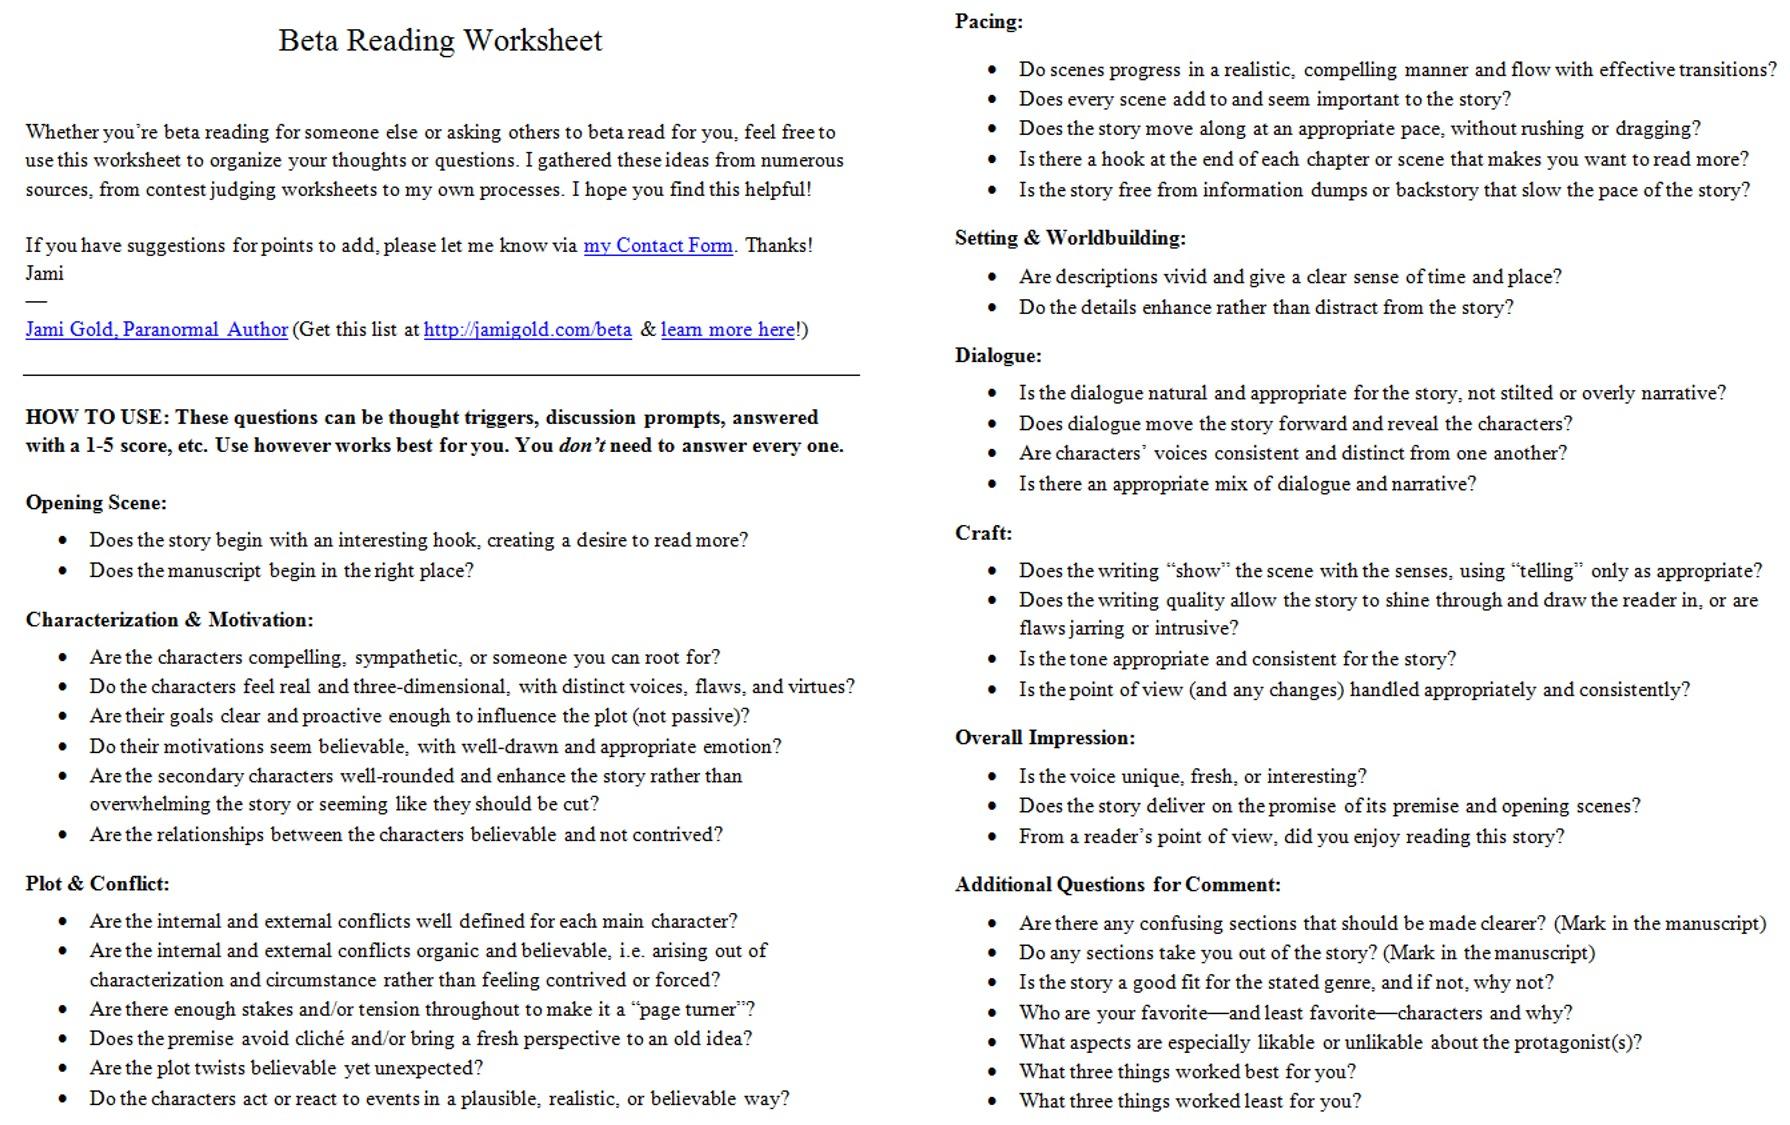 Weirdmailus  Winsome Worksheets For Writers  Jami Gold Paranormal Author With Engaging Screen Shot Of The Twopage Beta Reading Worksheet With Extraordinary Becoming Human Worksheet Also Science Worksheets In Spanish In Addition Anger Worksheets For Kids And Thai Alphabet Worksheet As Well As Ordinal Numbers Printable Worksheets Additionally The Mole Worksheet Answers From Jamigoldcom With Weirdmailus  Engaging Worksheets For Writers  Jami Gold Paranormal Author With Extraordinary Screen Shot Of The Twopage Beta Reading Worksheet And Winsome Becoming Human Worksheet Also Science Worksheets In Spanish In Addition Anger Worksheets For Kids From Jamigoldcom